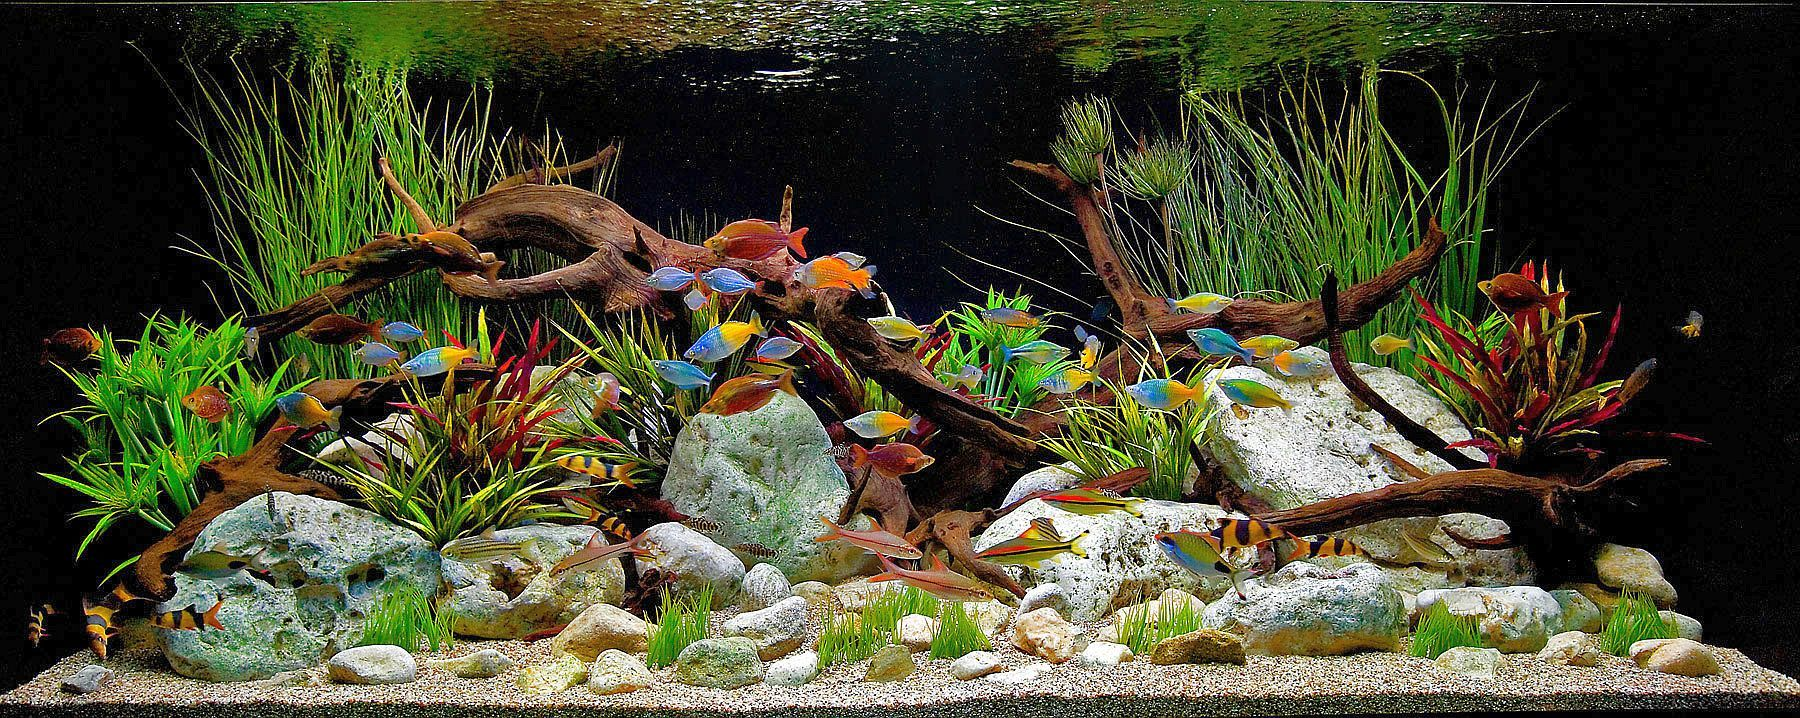 Freshwater aquarium fish houston - Pros And Cons Freshwater Or Saltwater Aquarium